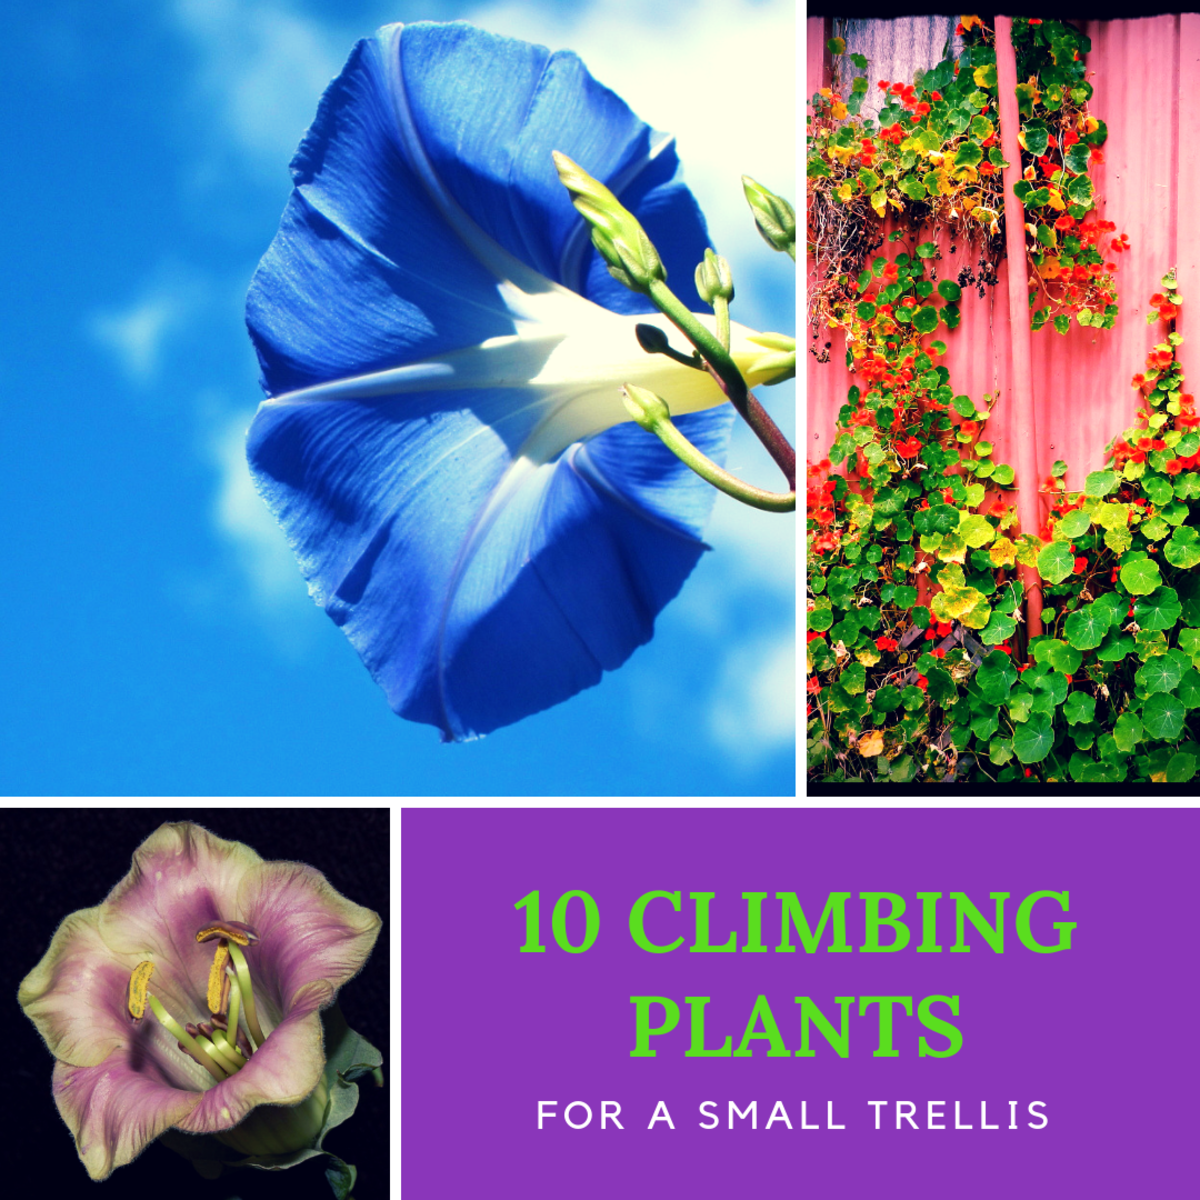 Flowers To Grow In Small Pots: Top 10 Climbing Plants For A Small Trellis